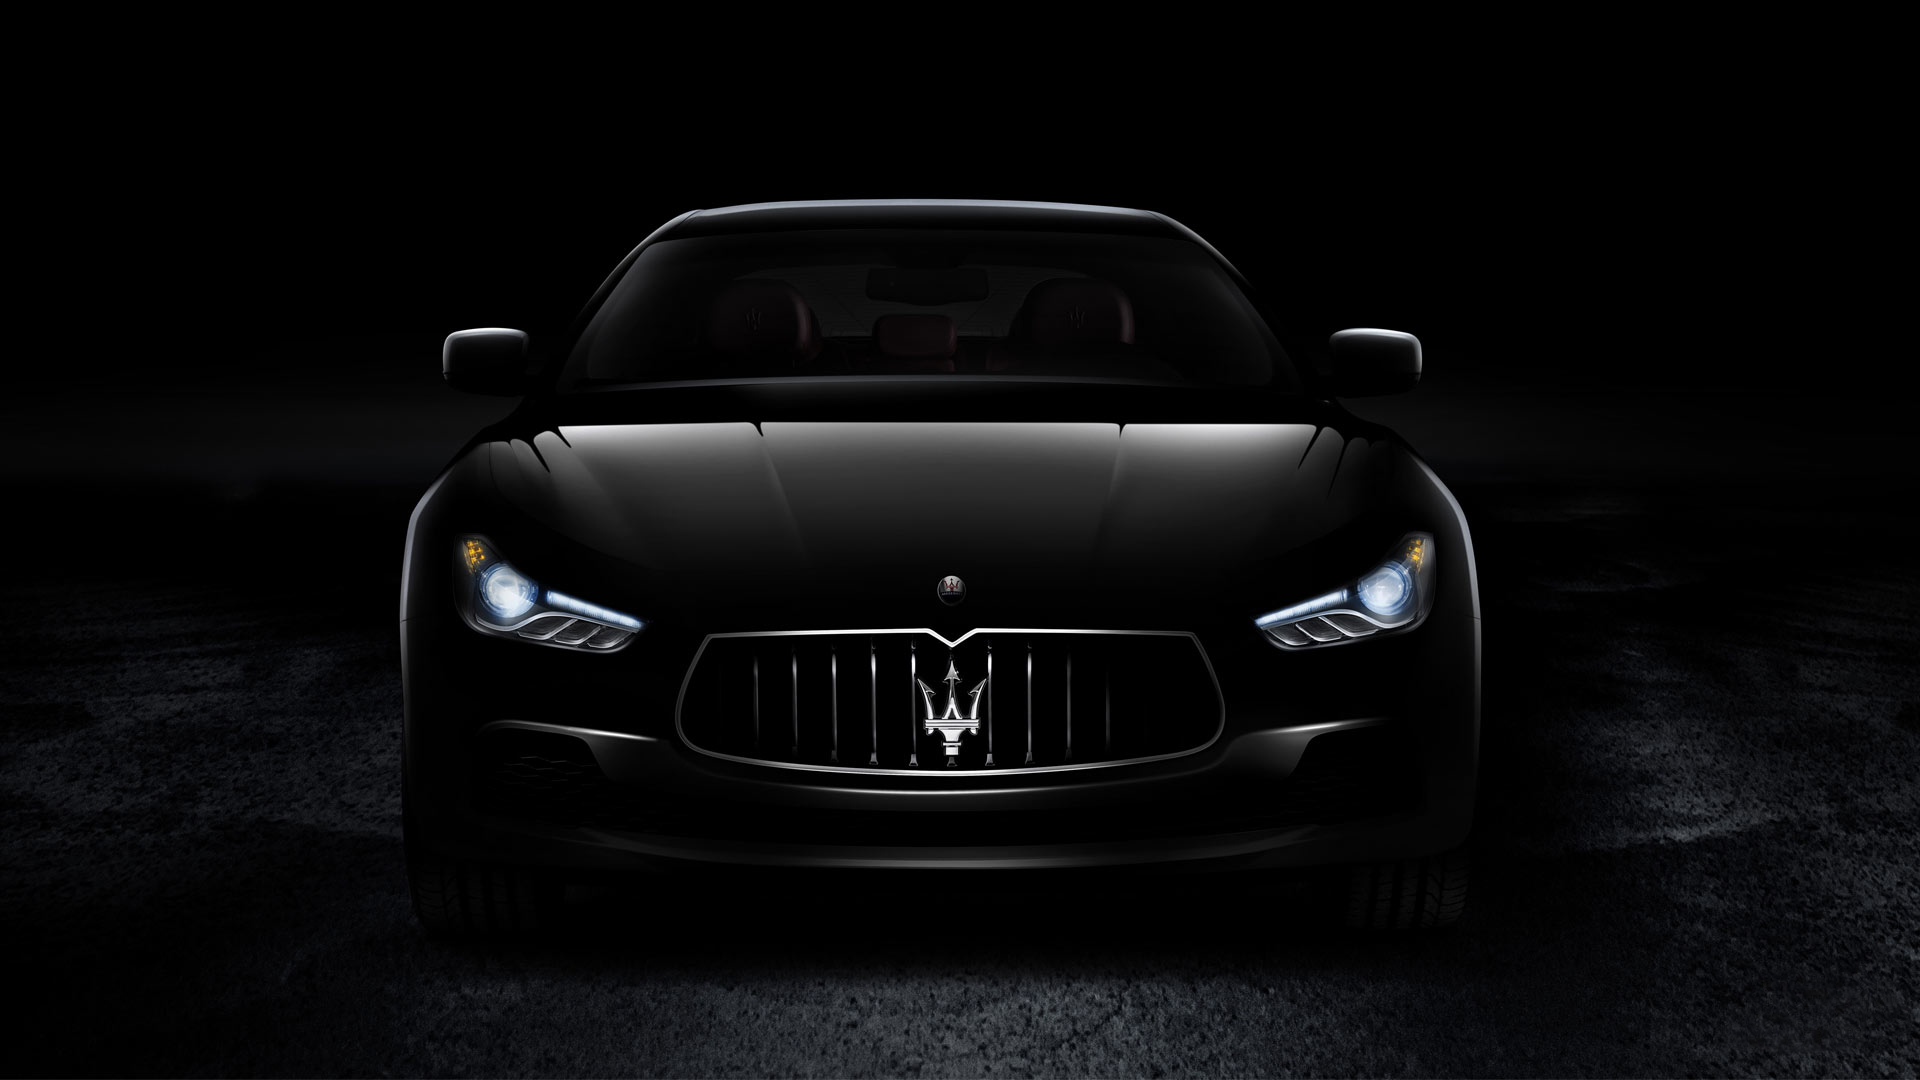 87 Maserati Ghibli HD Wallpapers | Background Images ...